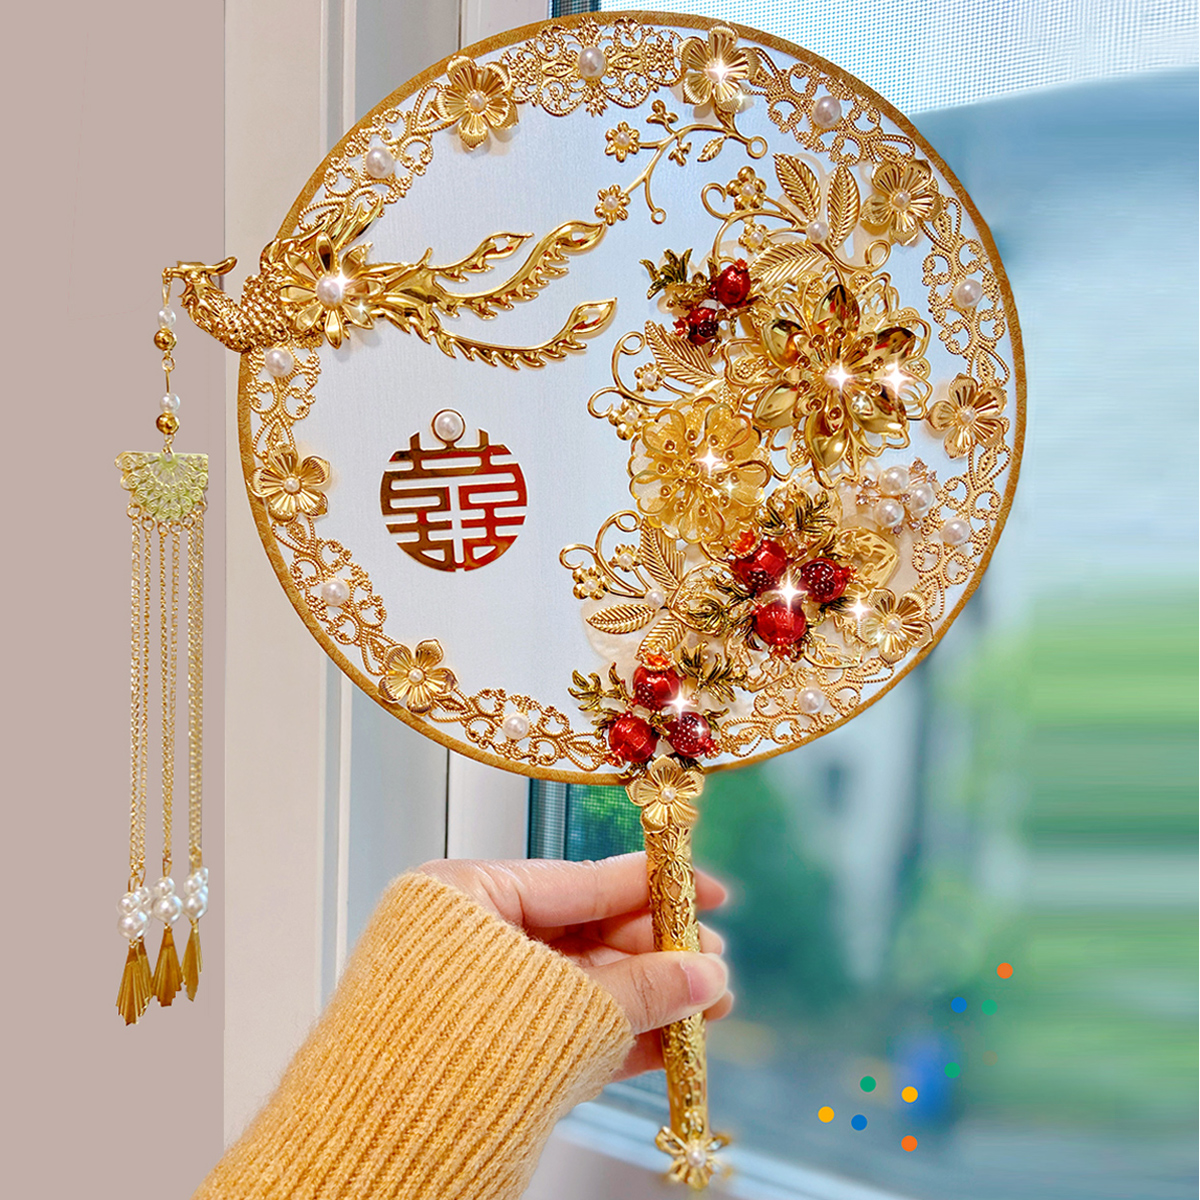 Bride Chinese wedding troupe fan ancient wind wedding fan show clothes fan hand holding flower fan DIY material bag